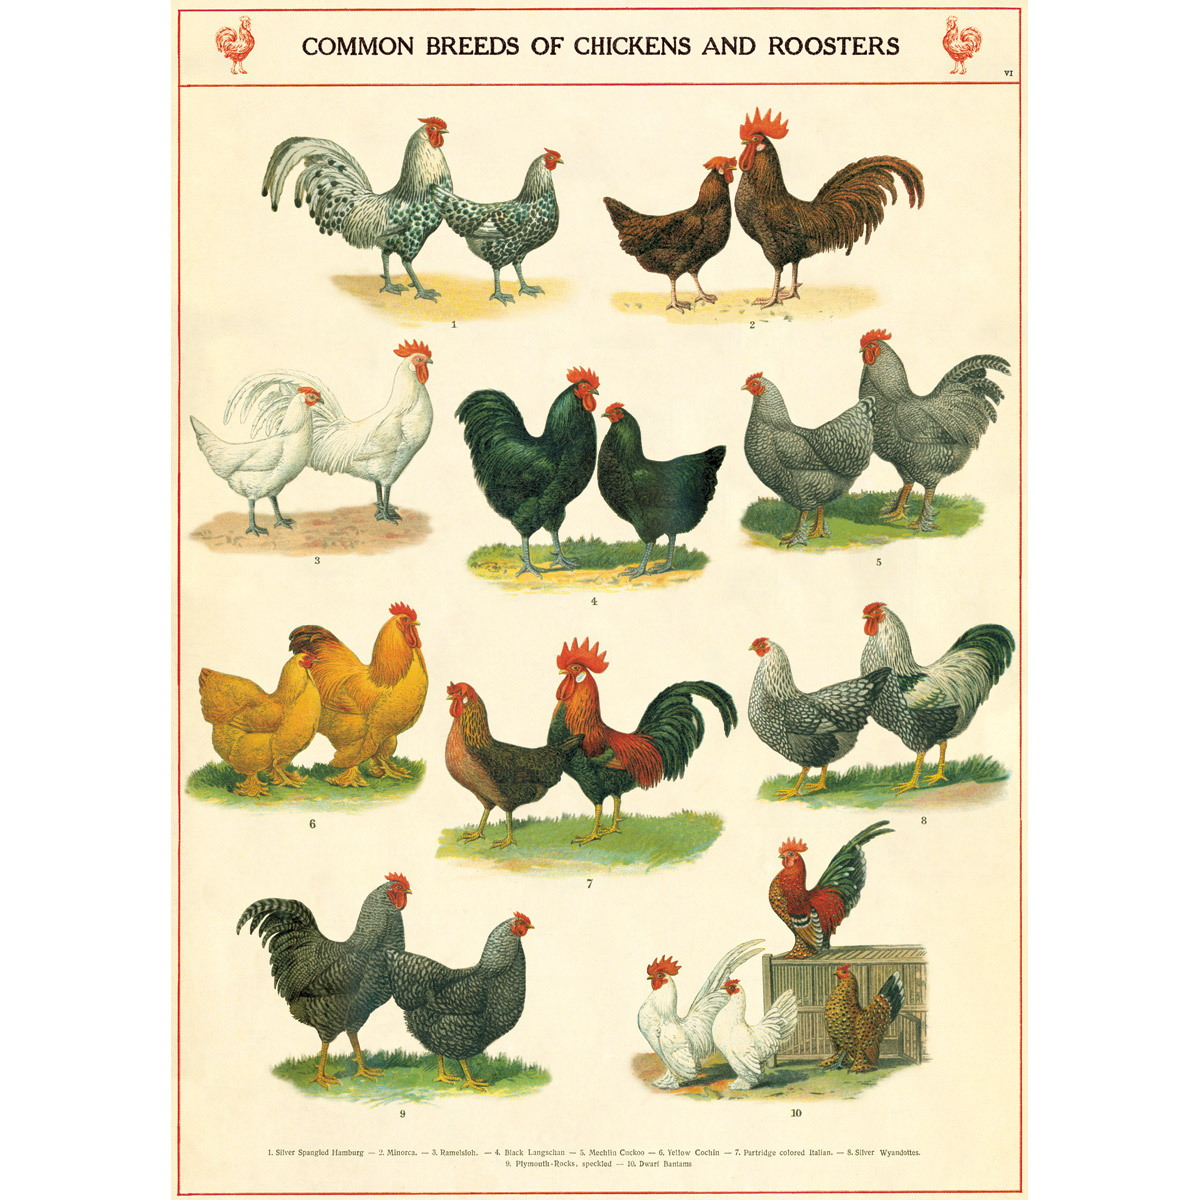 Chicken rooster breeds chart vintage style poster decorative